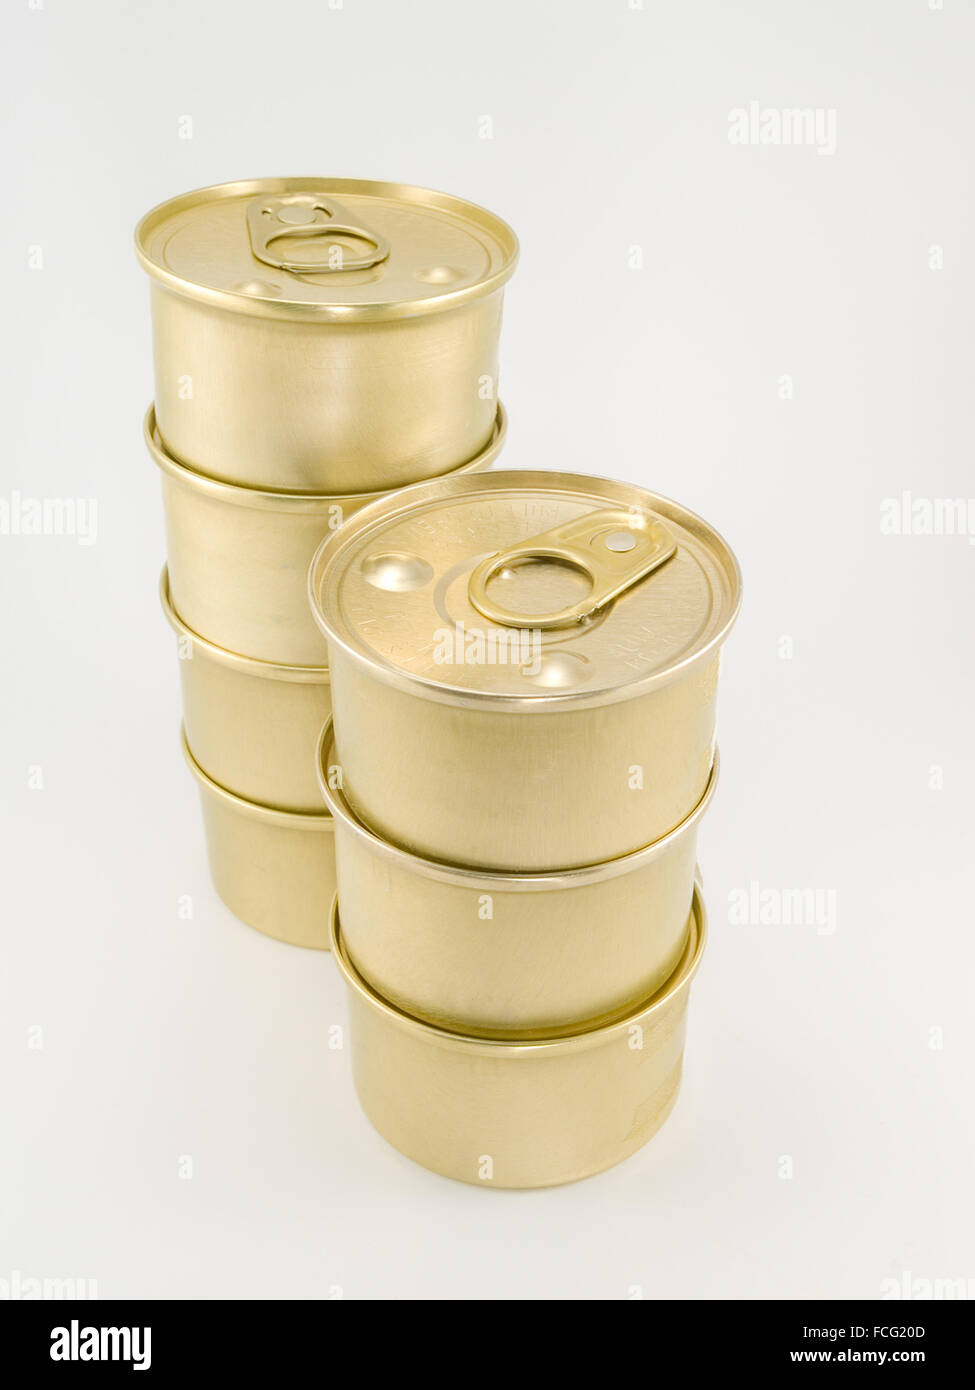 Seven gold blank cat food cans with pull tab piled on top of each other against a white background. - Stock Image